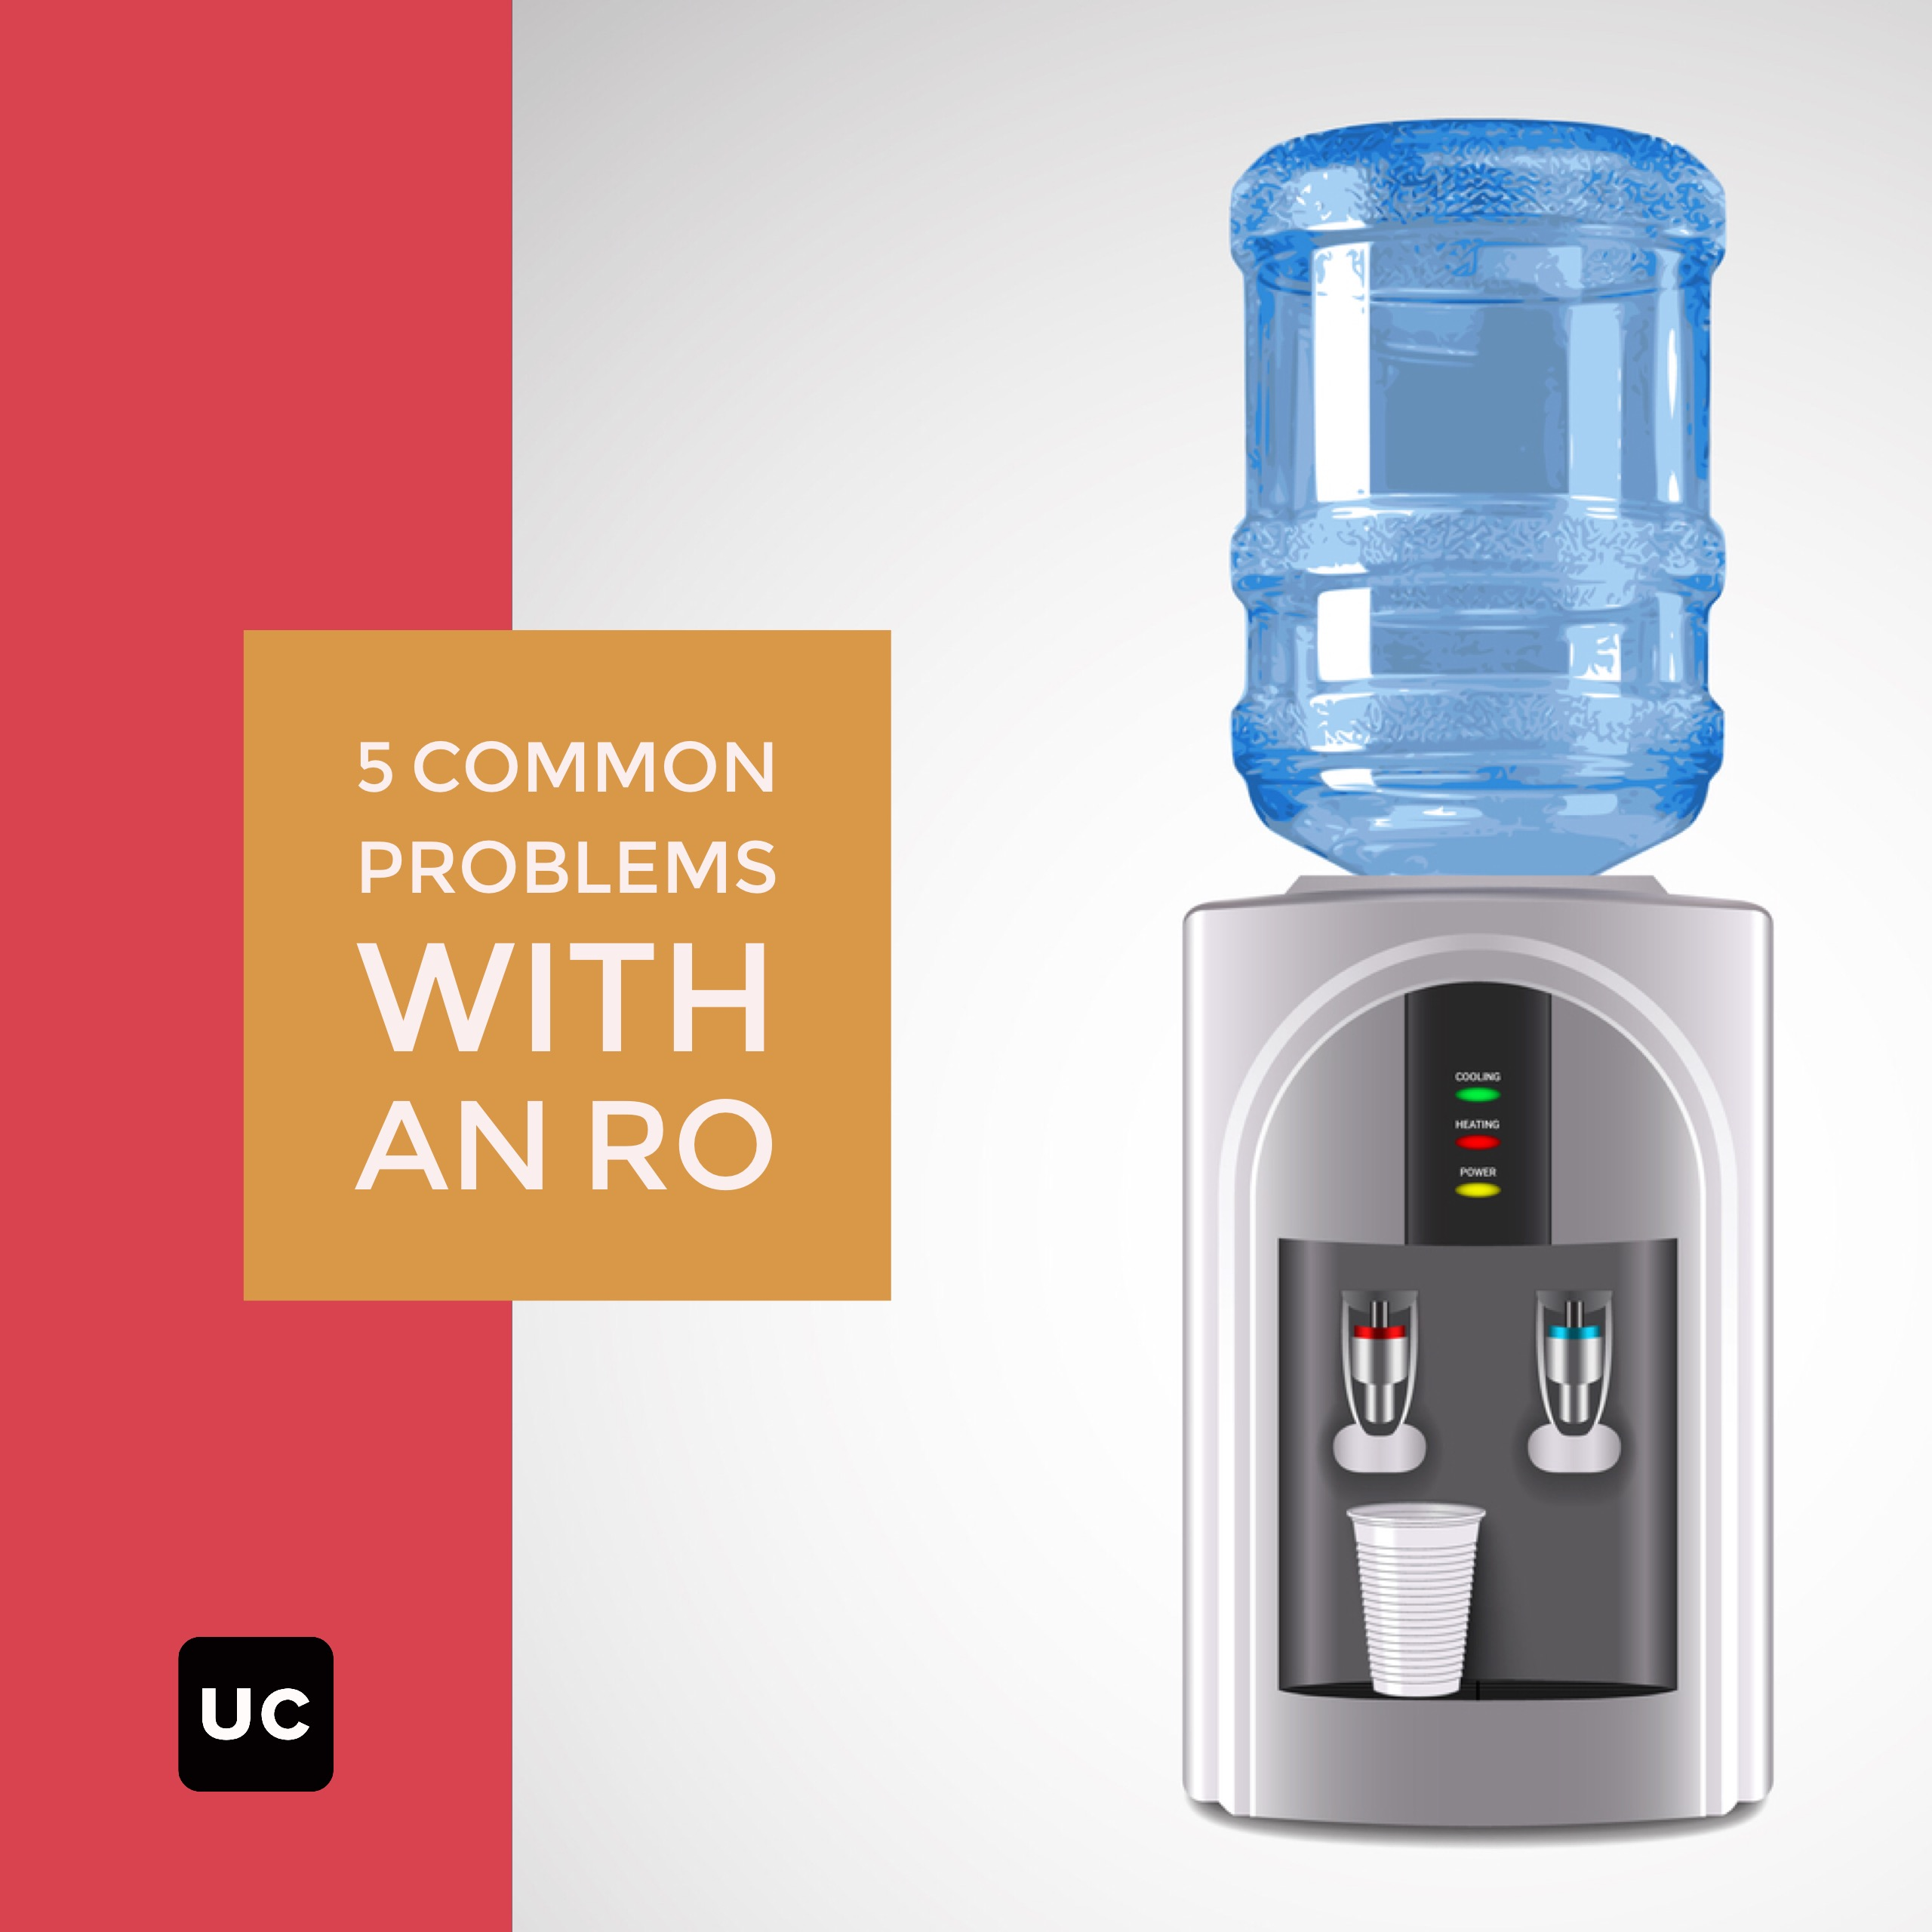 5 Most Common Problems With An RO System And Their Solutions